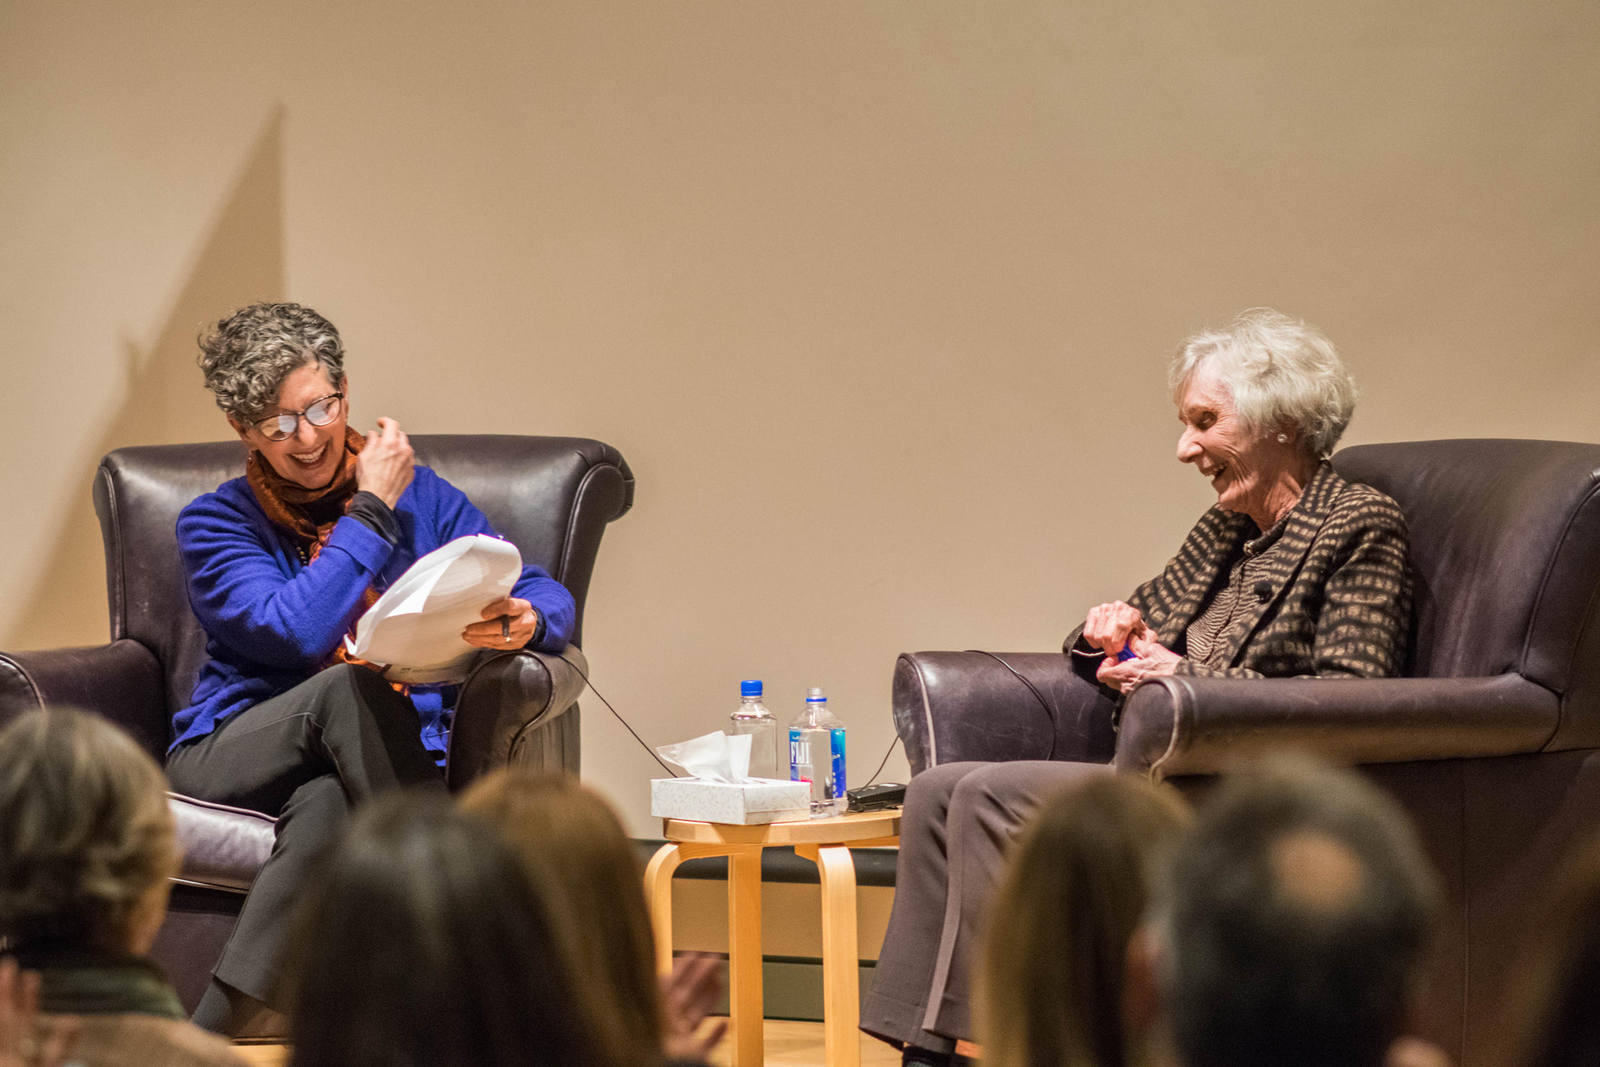 Marcie Sillman interviewing Virginia Wright.